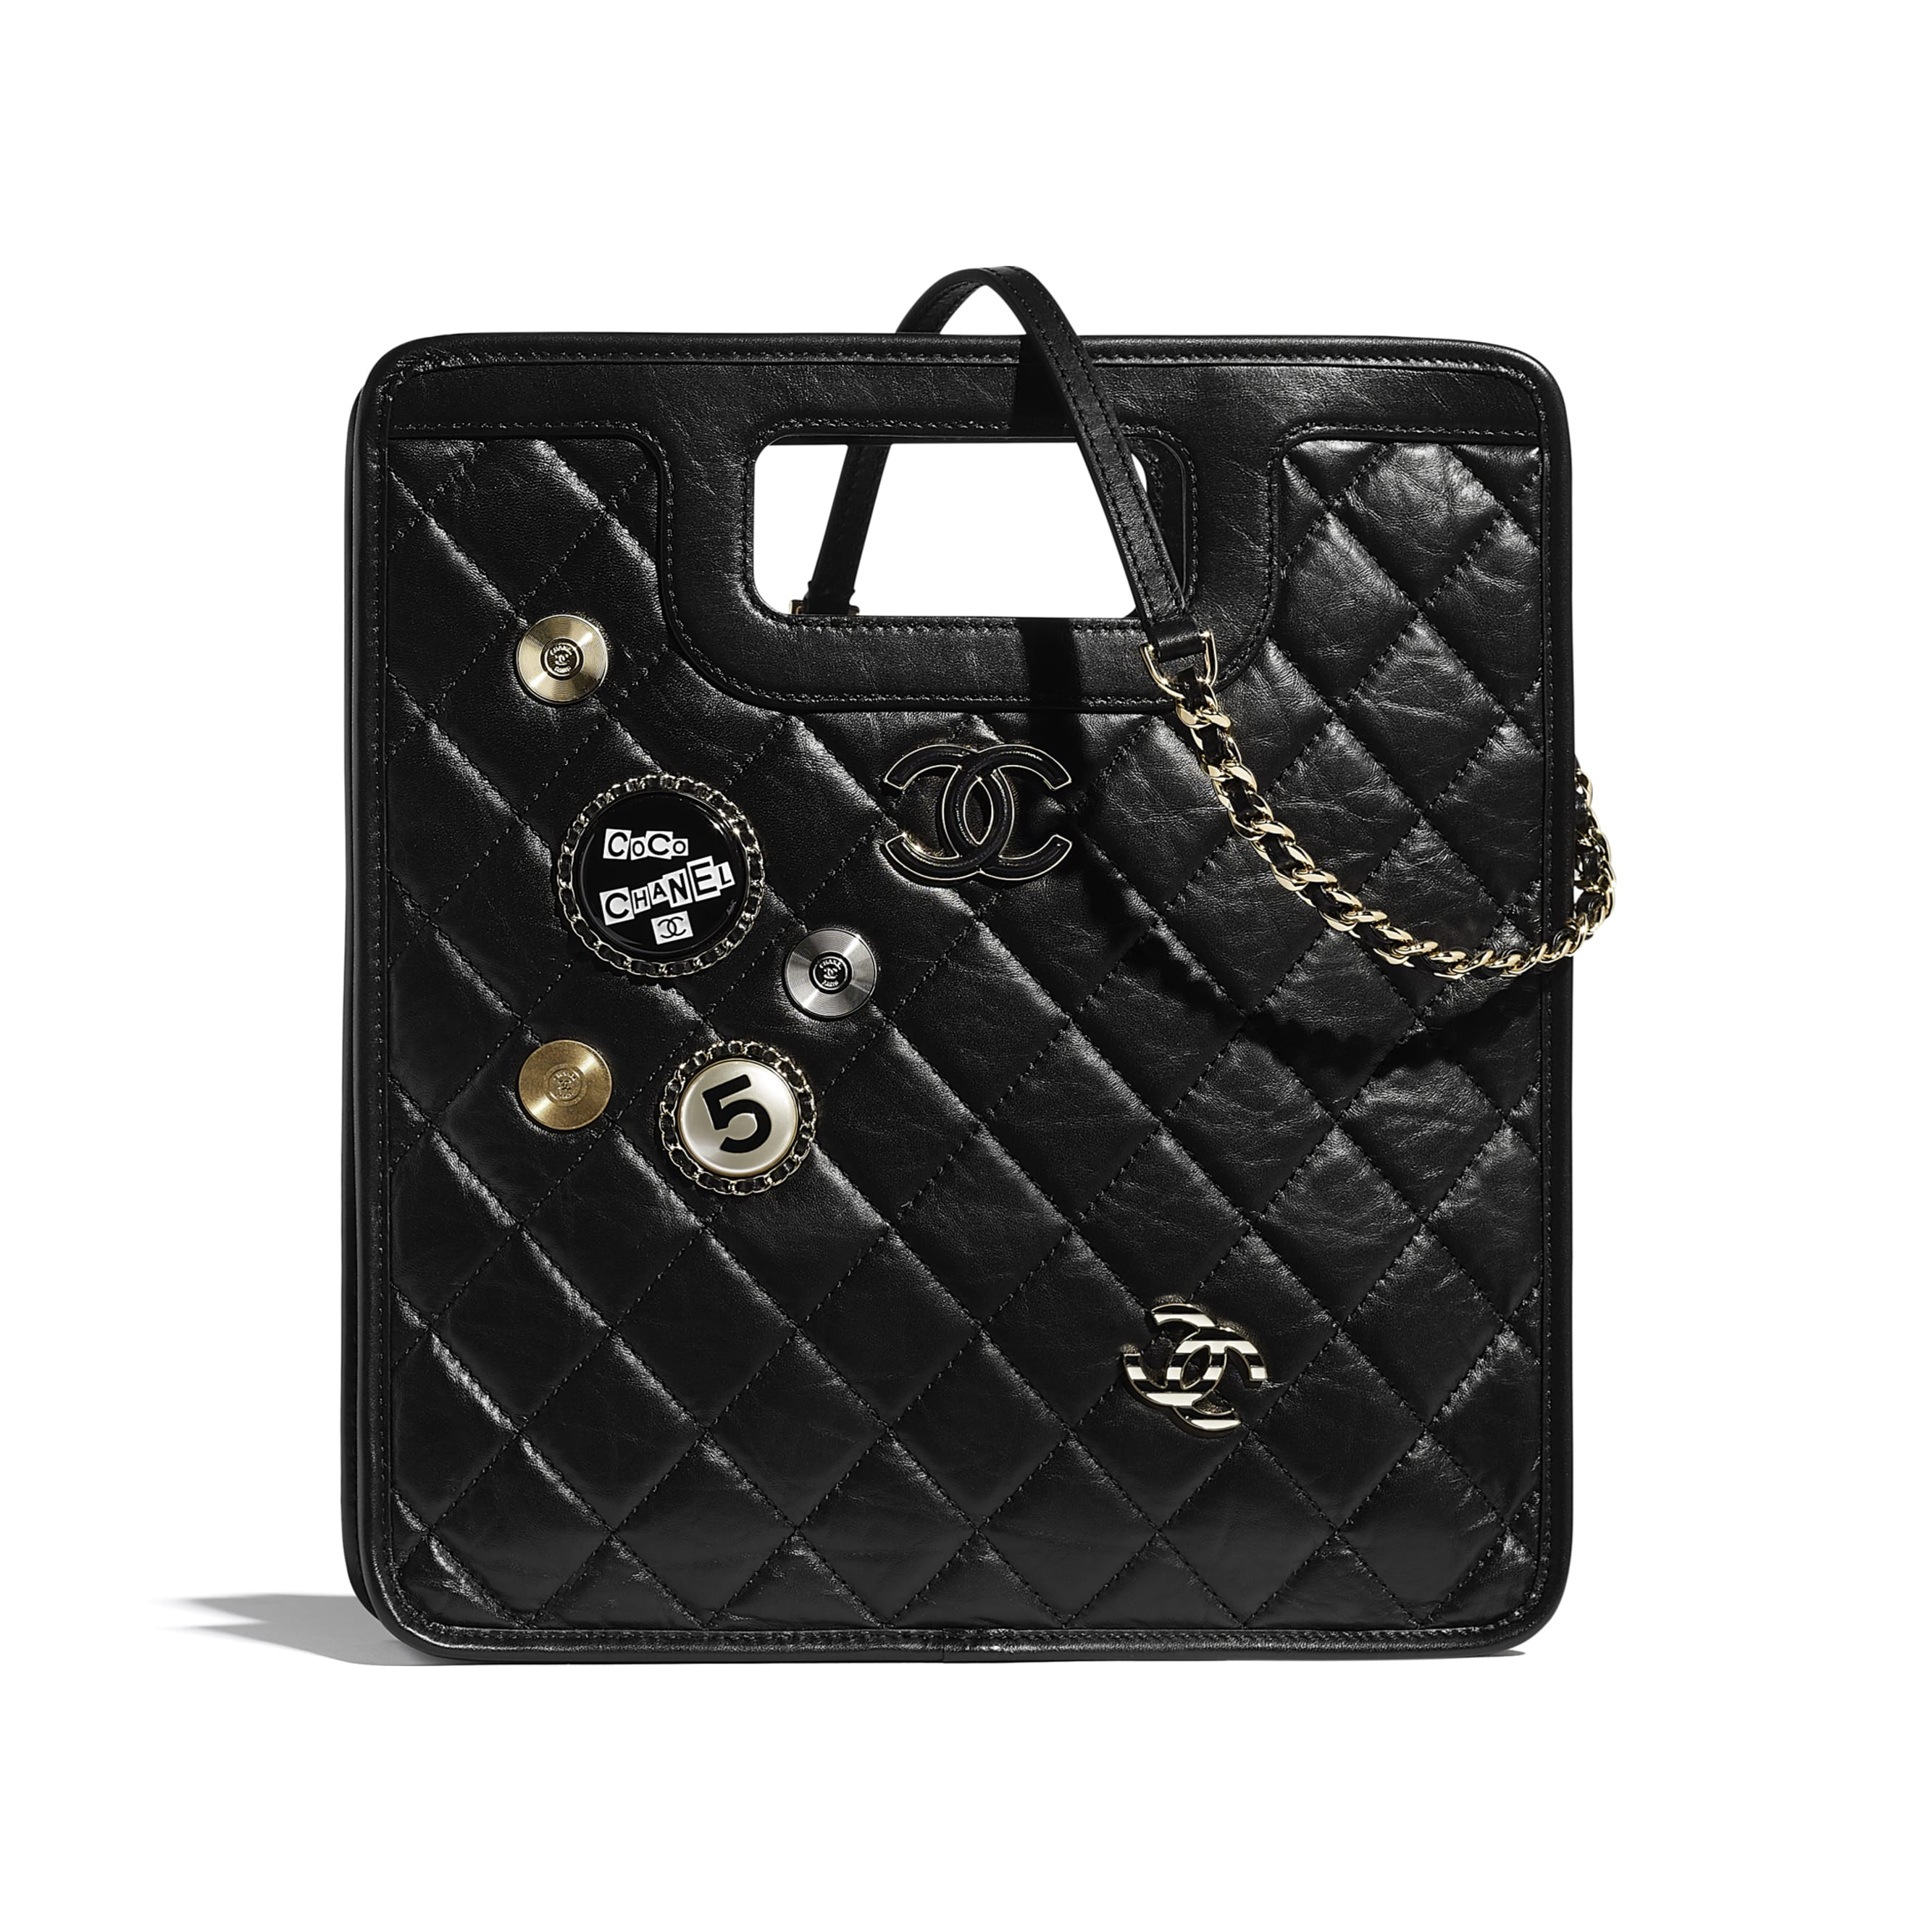 Small Tote - Black - Aged Calfskin, Charms & Gold Metal - CHANEL - Default view - see standard sized version